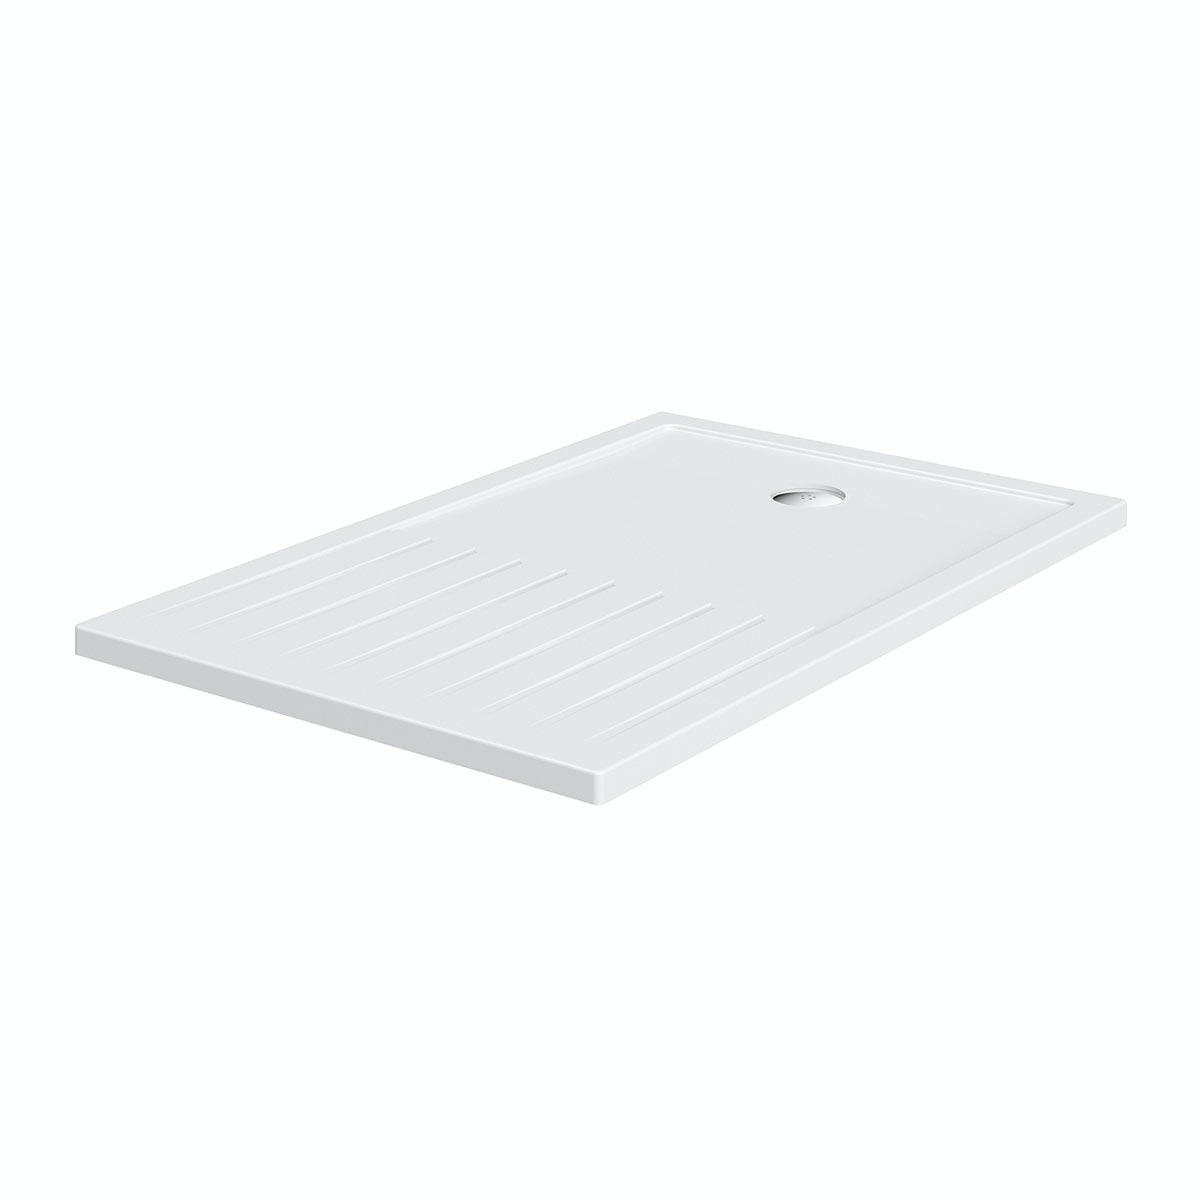 Mode rectangular walk in shower tray 1400 x 900